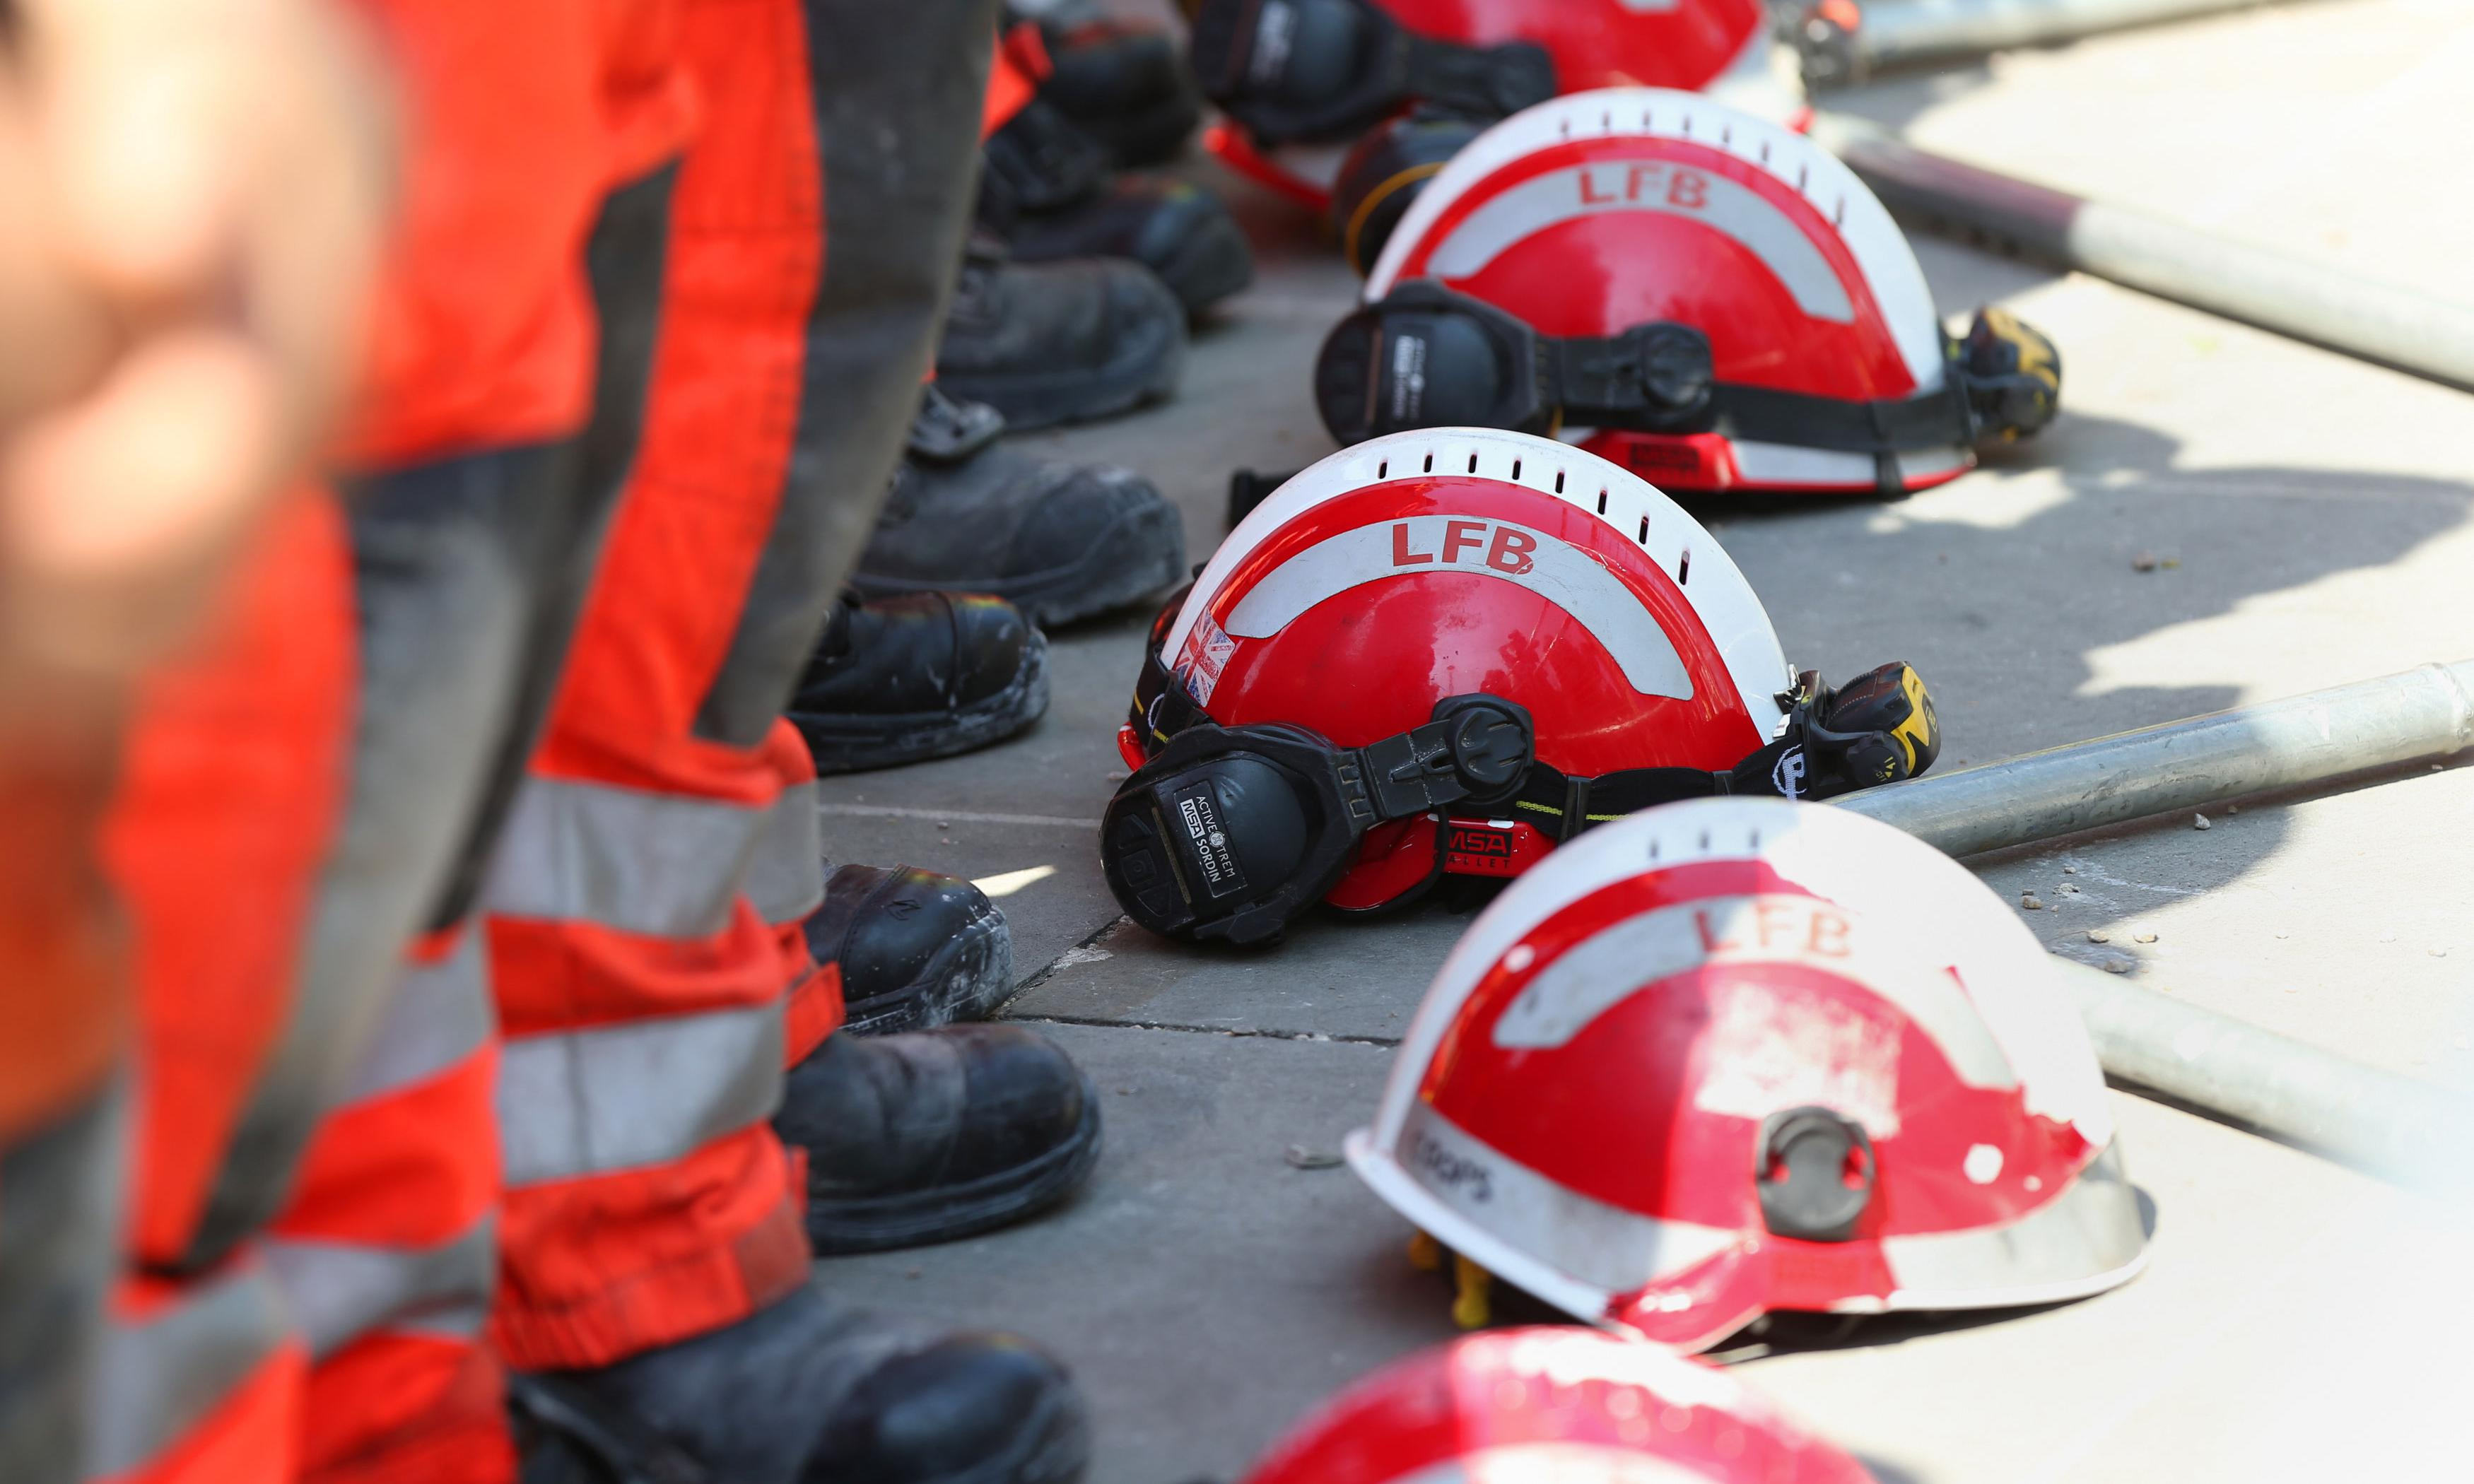 Ministers complacent over high-rise fire risk, say firefighters